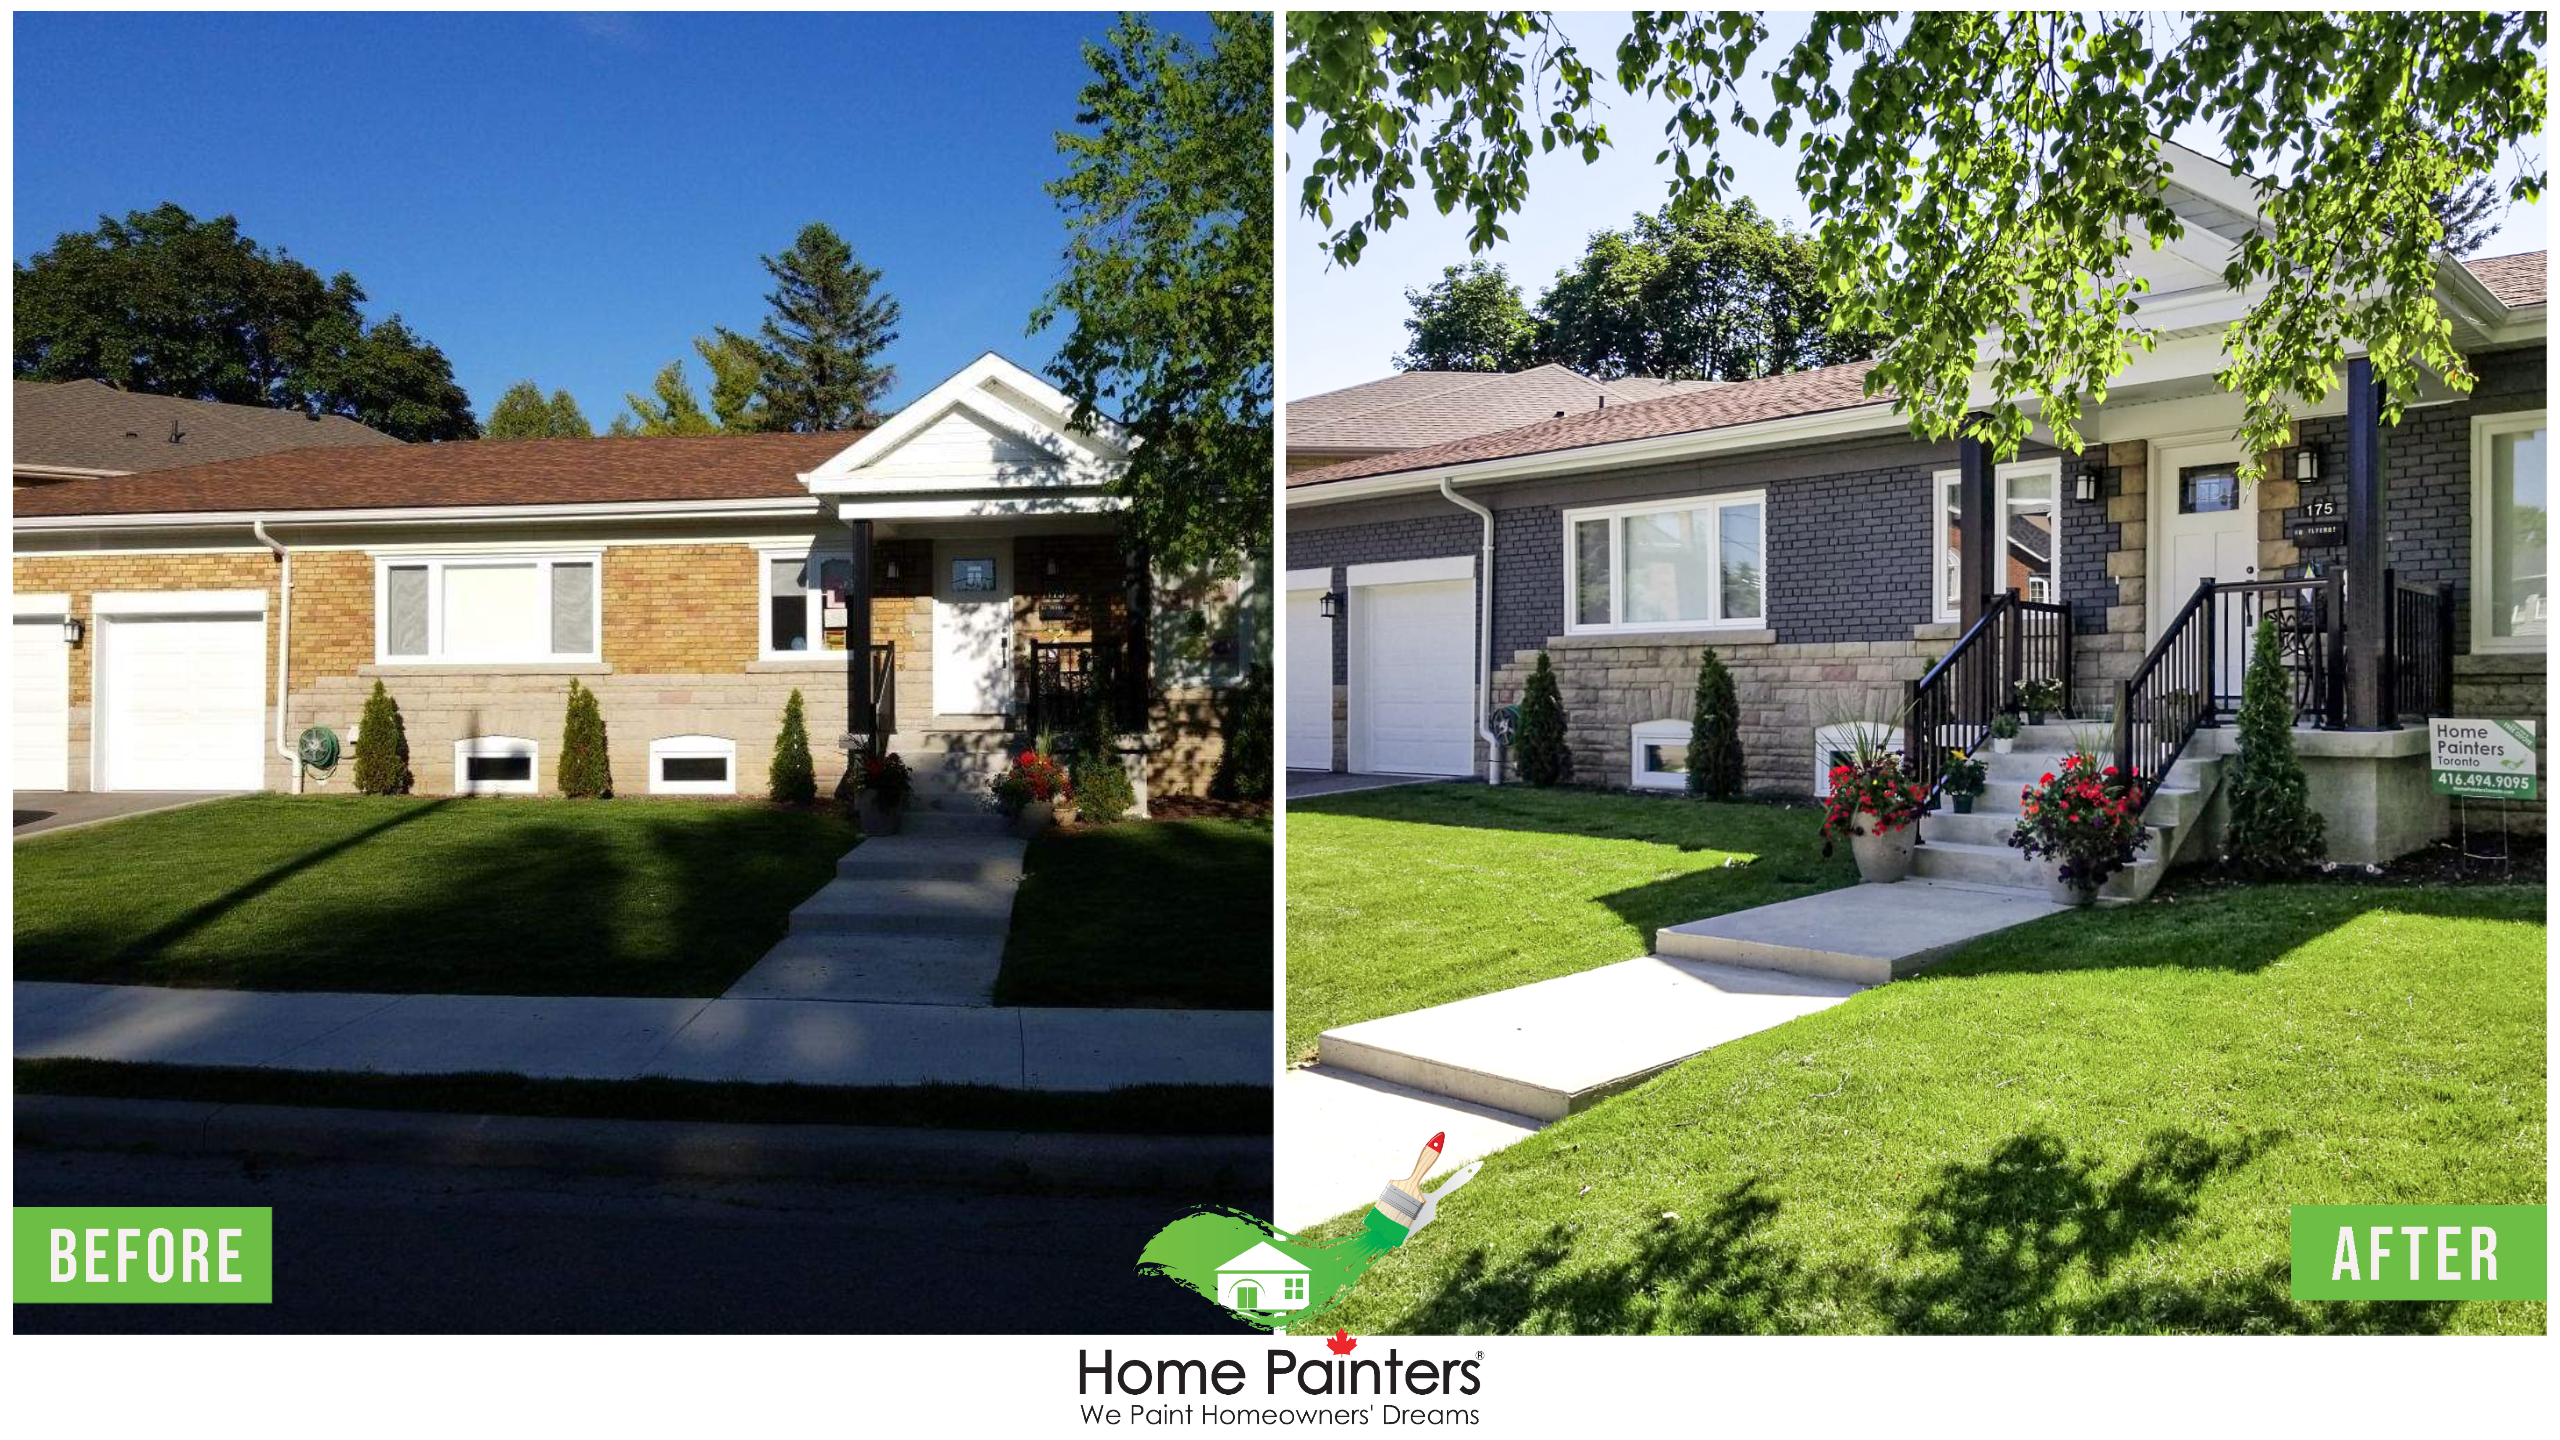 Before and after of a brick stained home, from a red brick to modern dark gray colour, donee by Home Painters toronto Toronto painting company